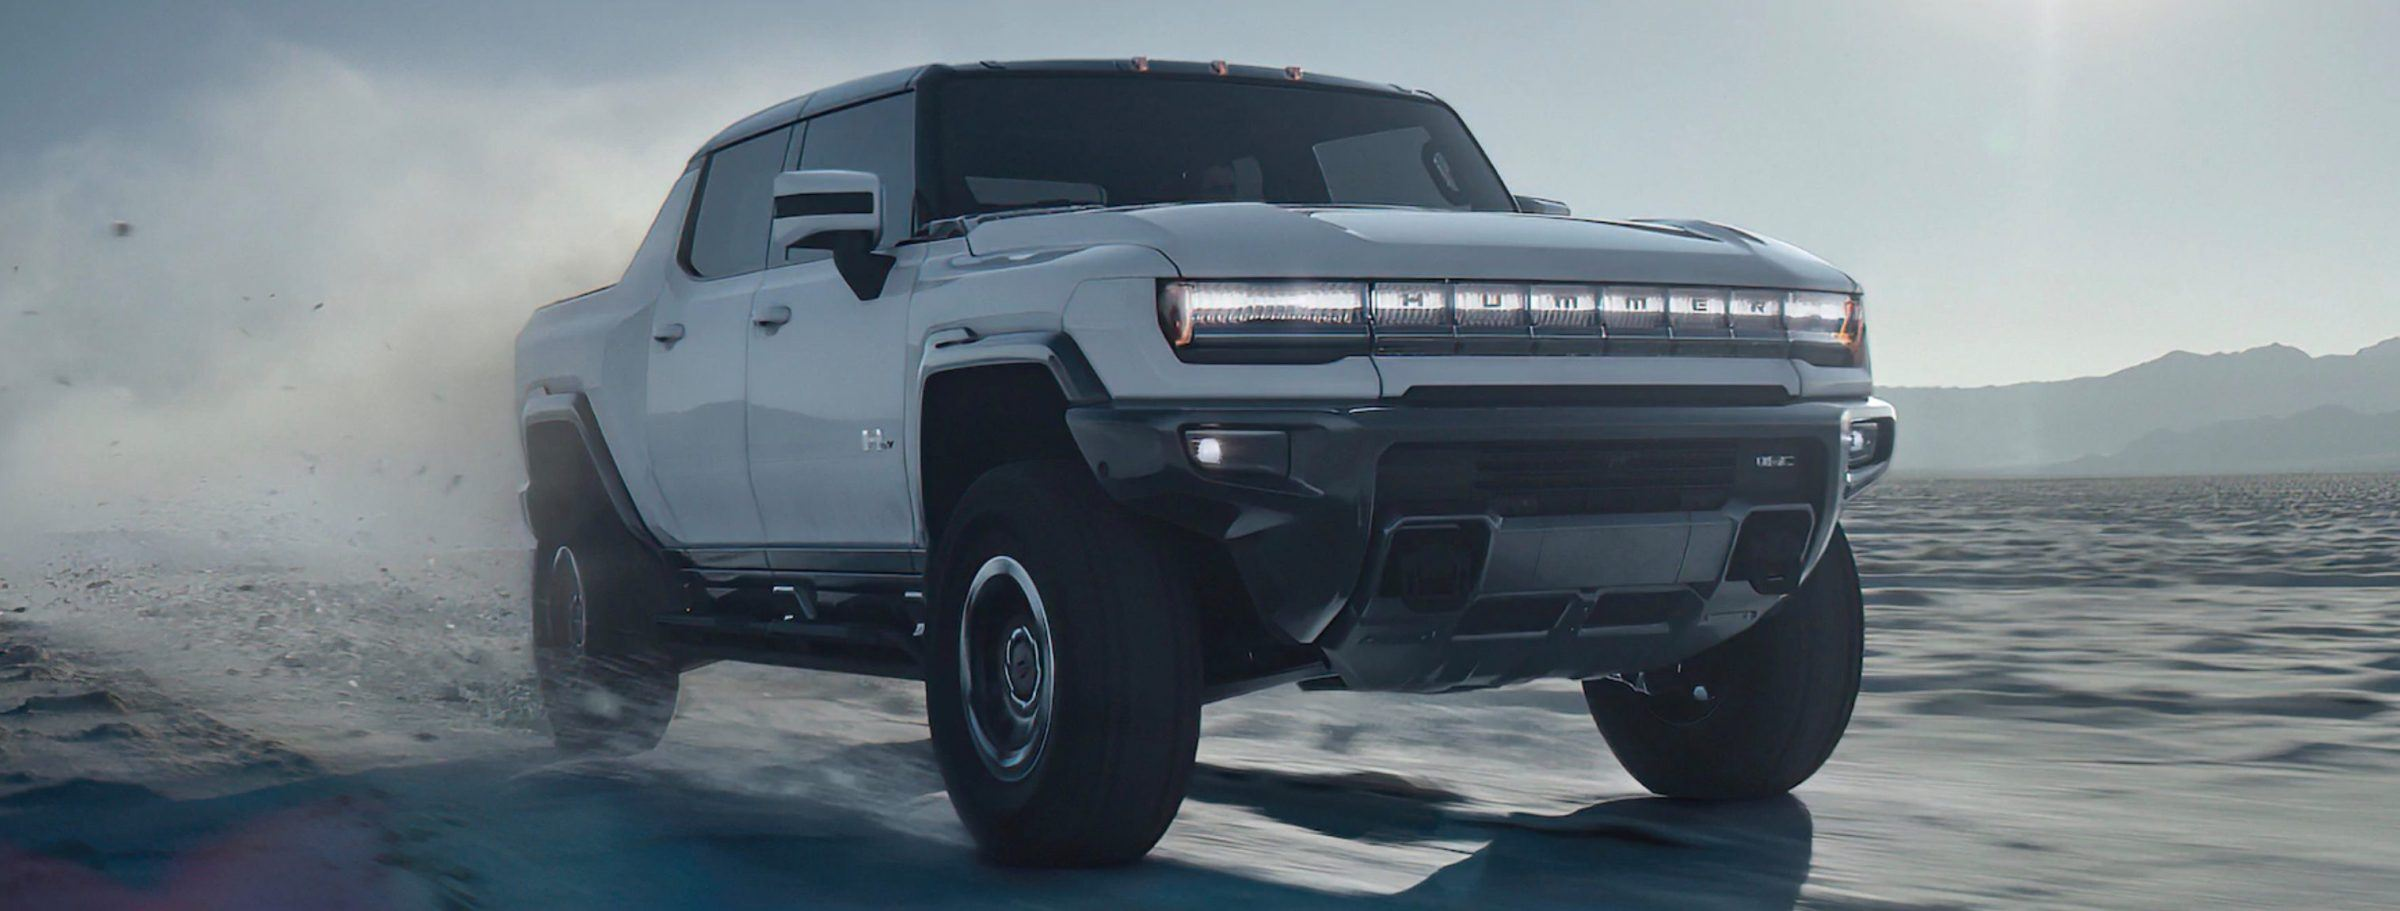 GMC Hummer EV | World's First All-Electric Super Truck